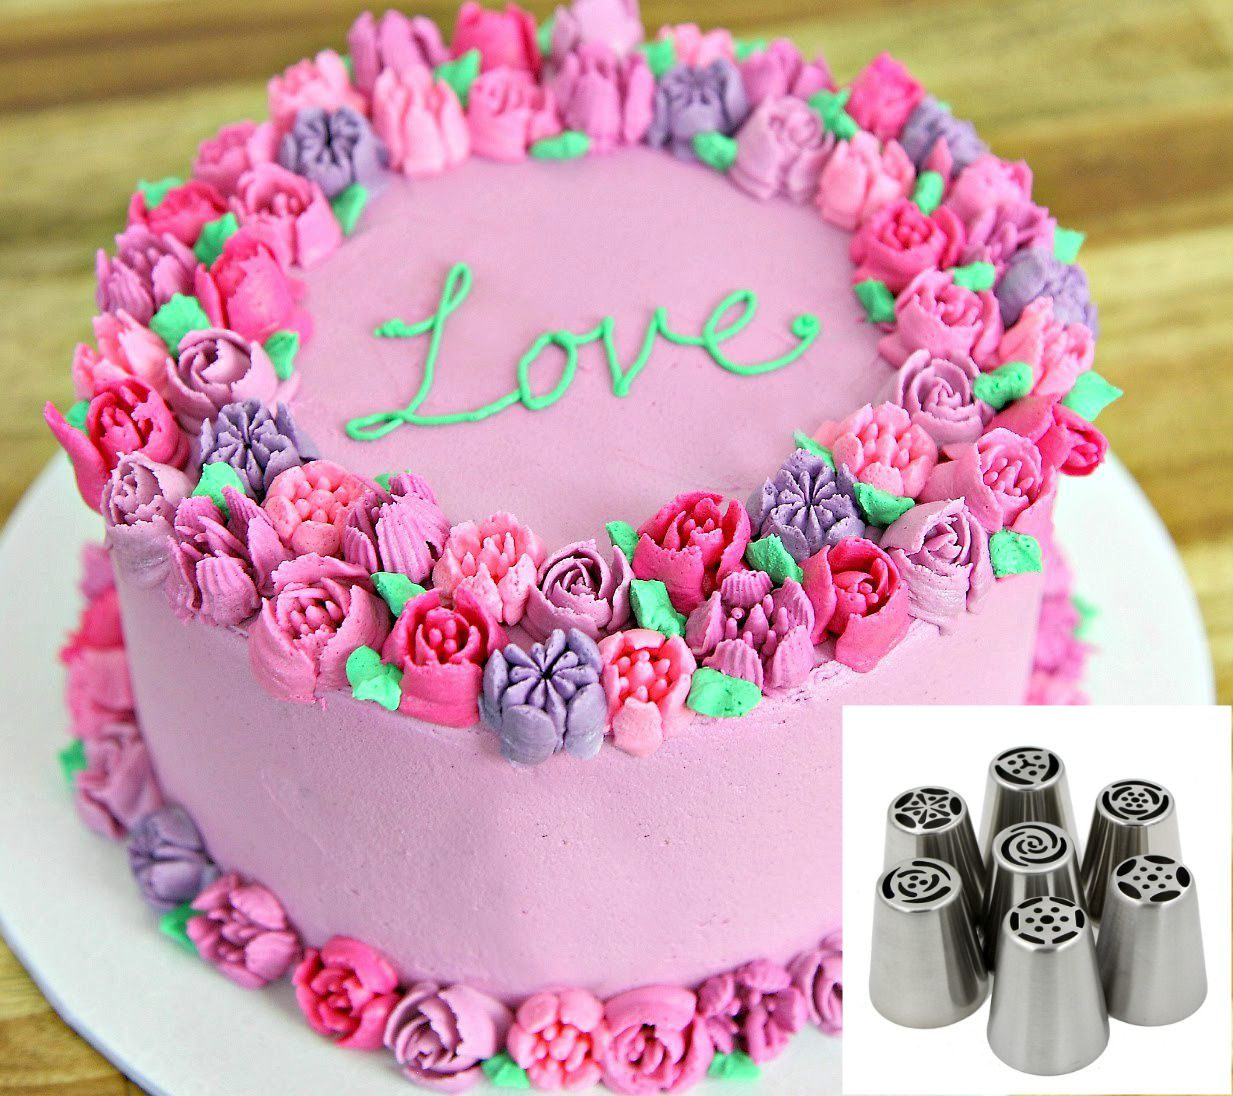 Russian Piping Nozzles Buttercream Cake